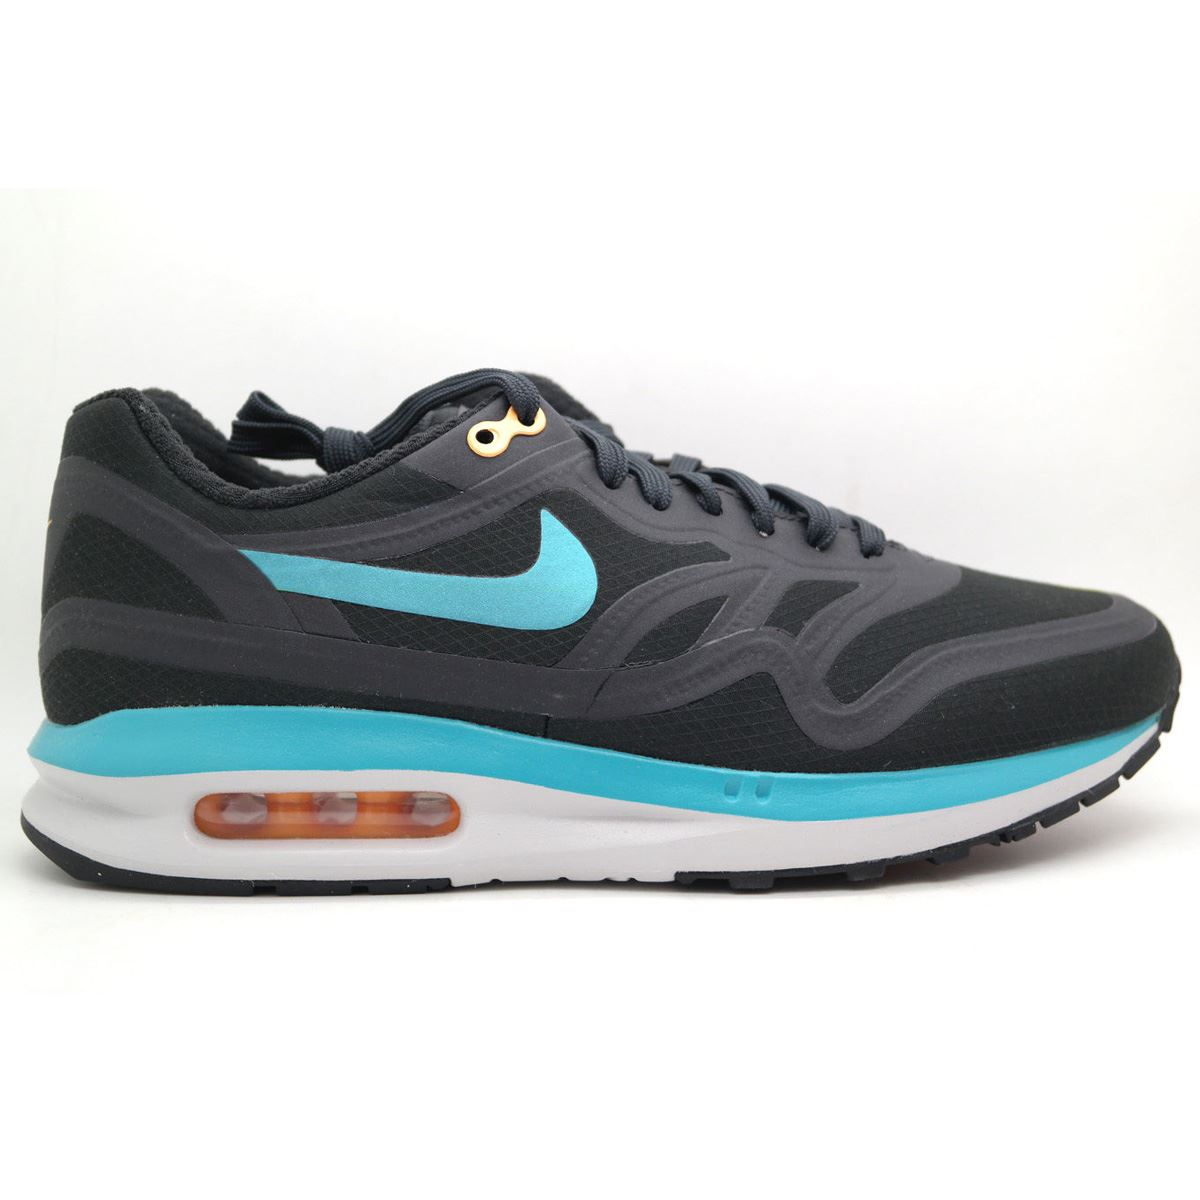 nike air max lunar 1 mens trainers ebay. Black Bedroom Furniture Sets. Home Design Ideas